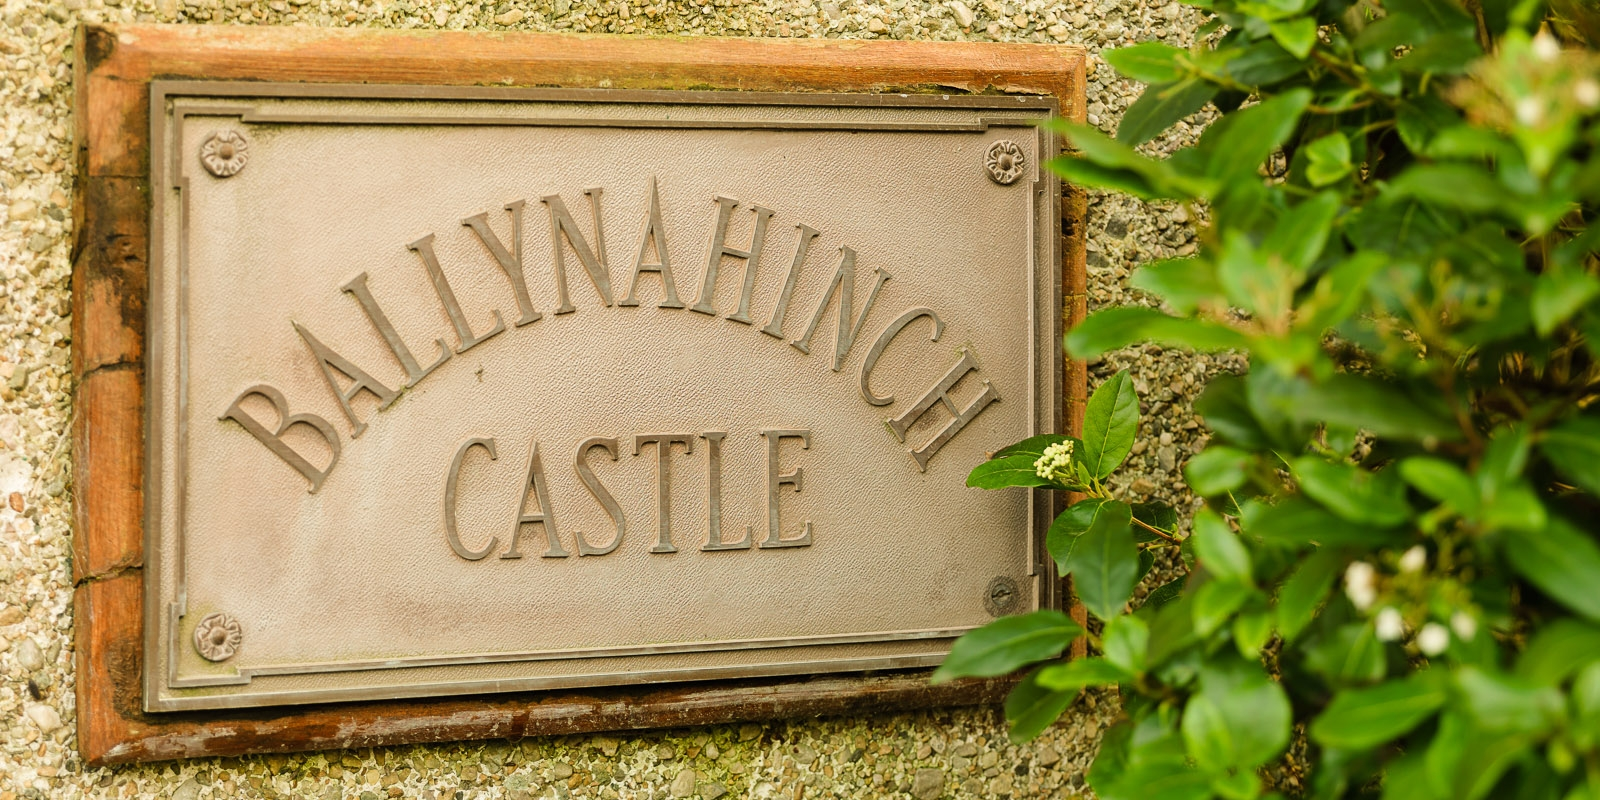 Ballynahinch Castle Plaque 1